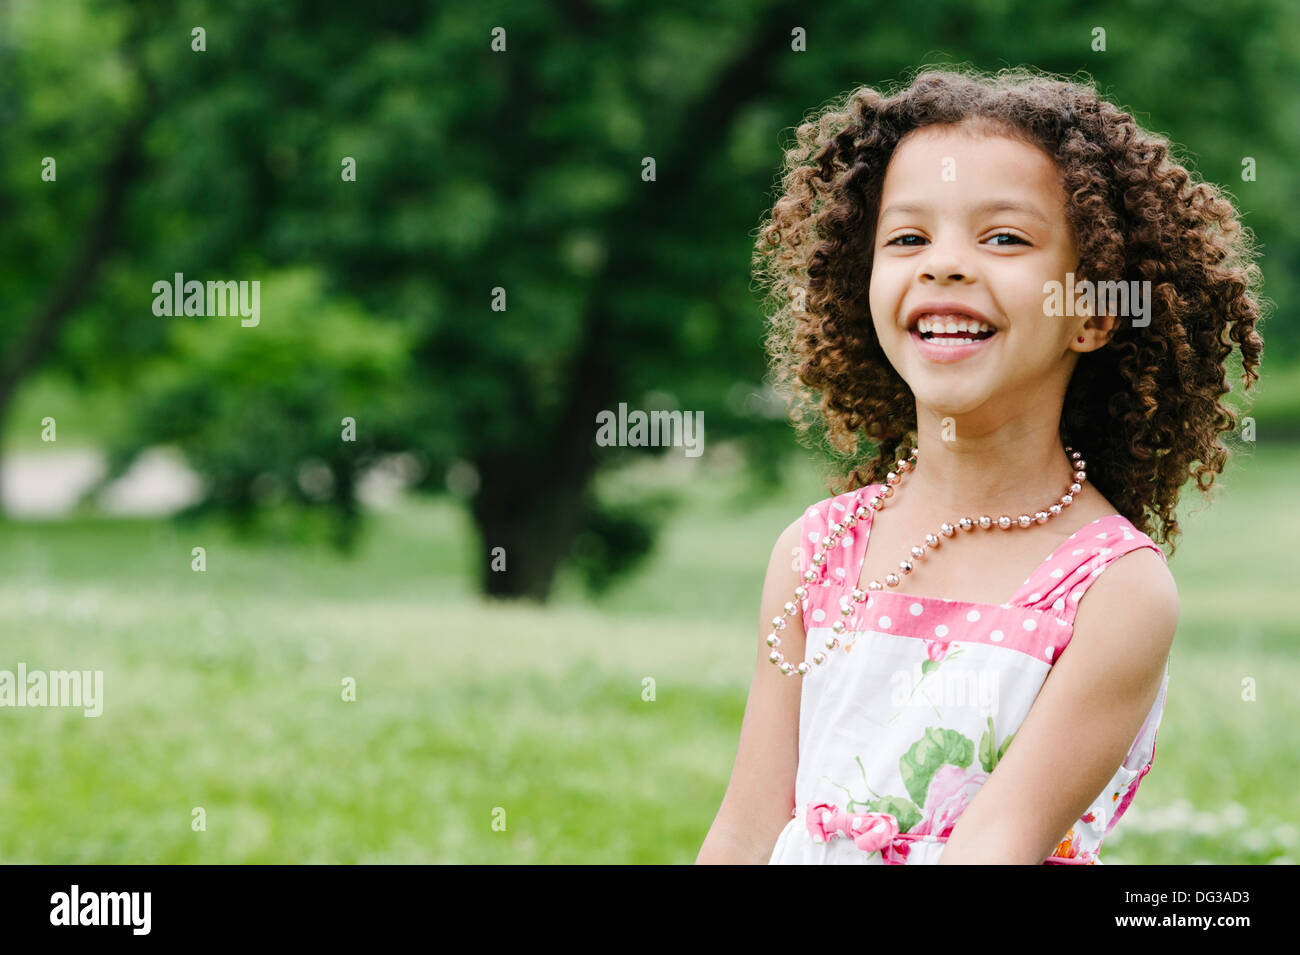 Smiling Young Girl With Curly Brown Hair, Portrait - Stock Image